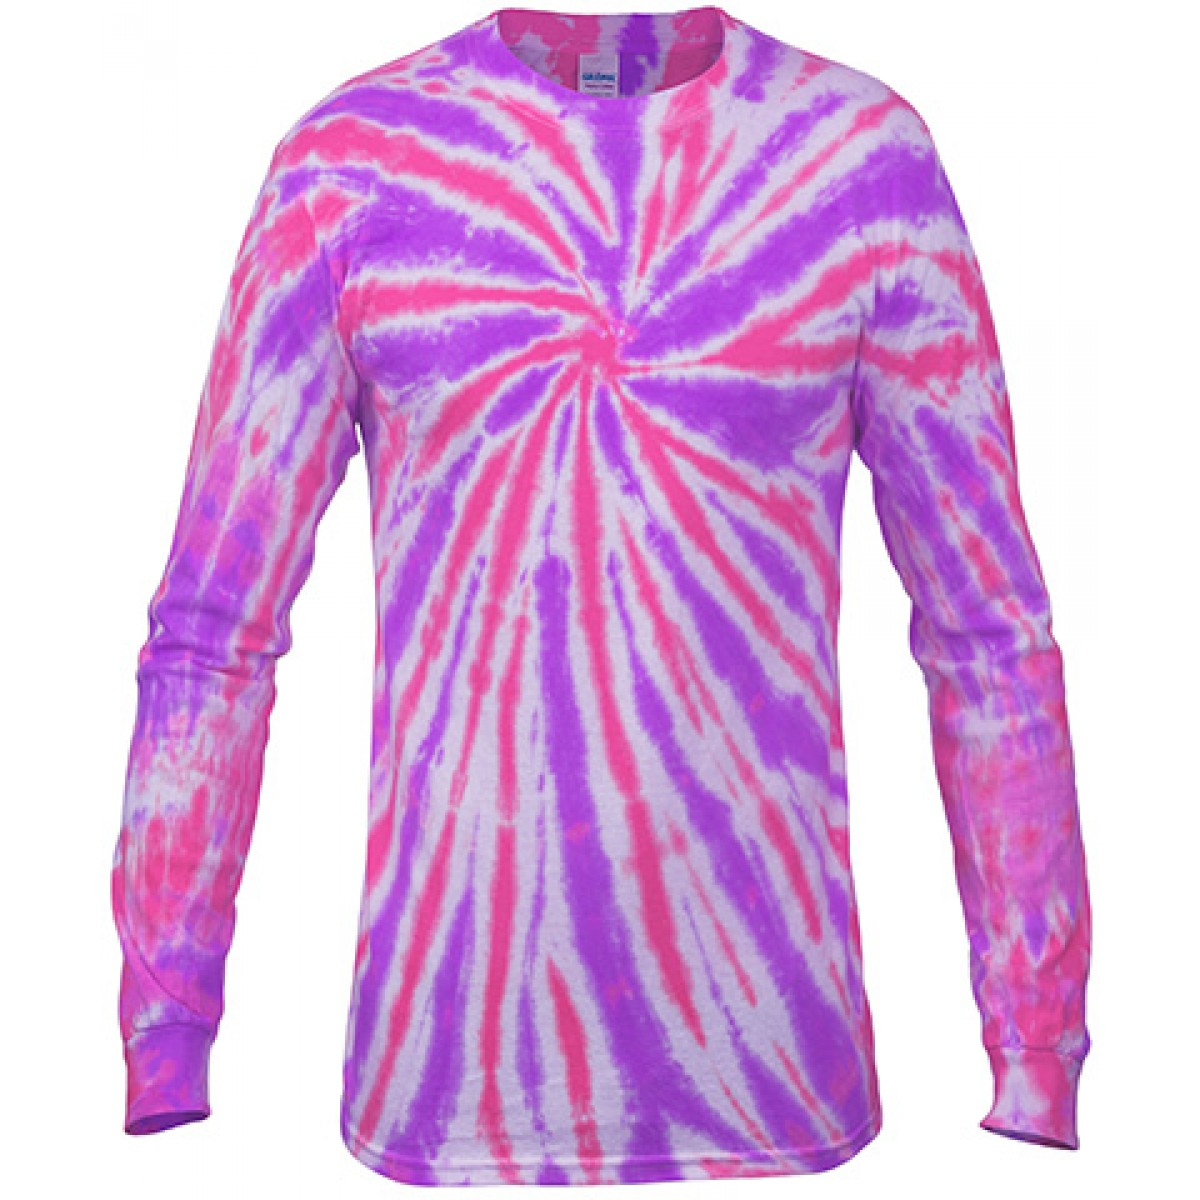 Multi Color Tie-Dye Long Sleeve Shirt -Purple-2XL